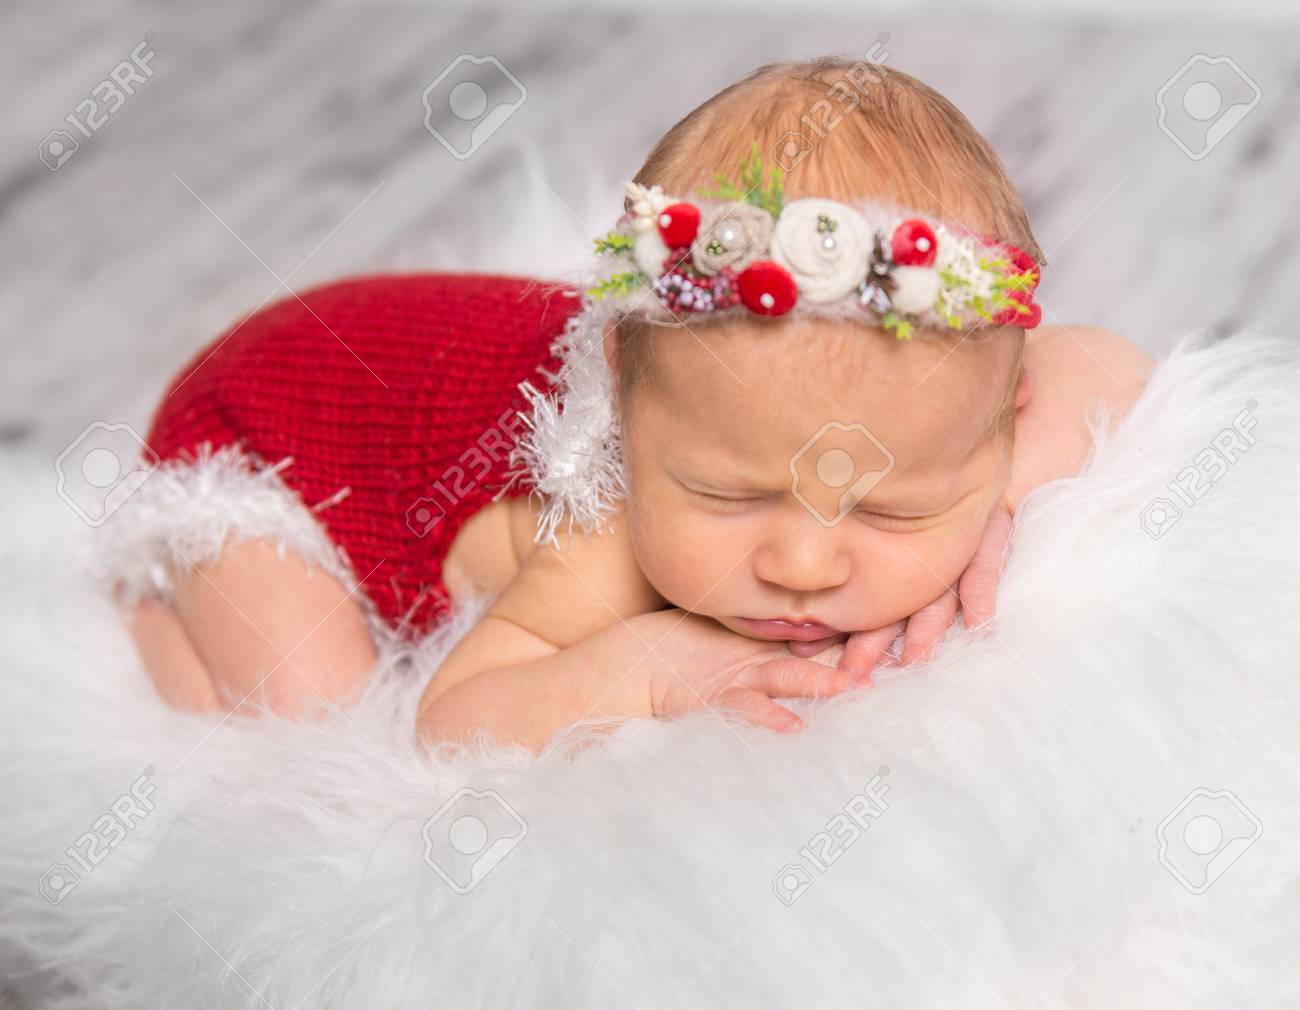 6bd5d5a0b Lovely Newborn Girl In Red Romper And Colorful Headband Sleeping ...